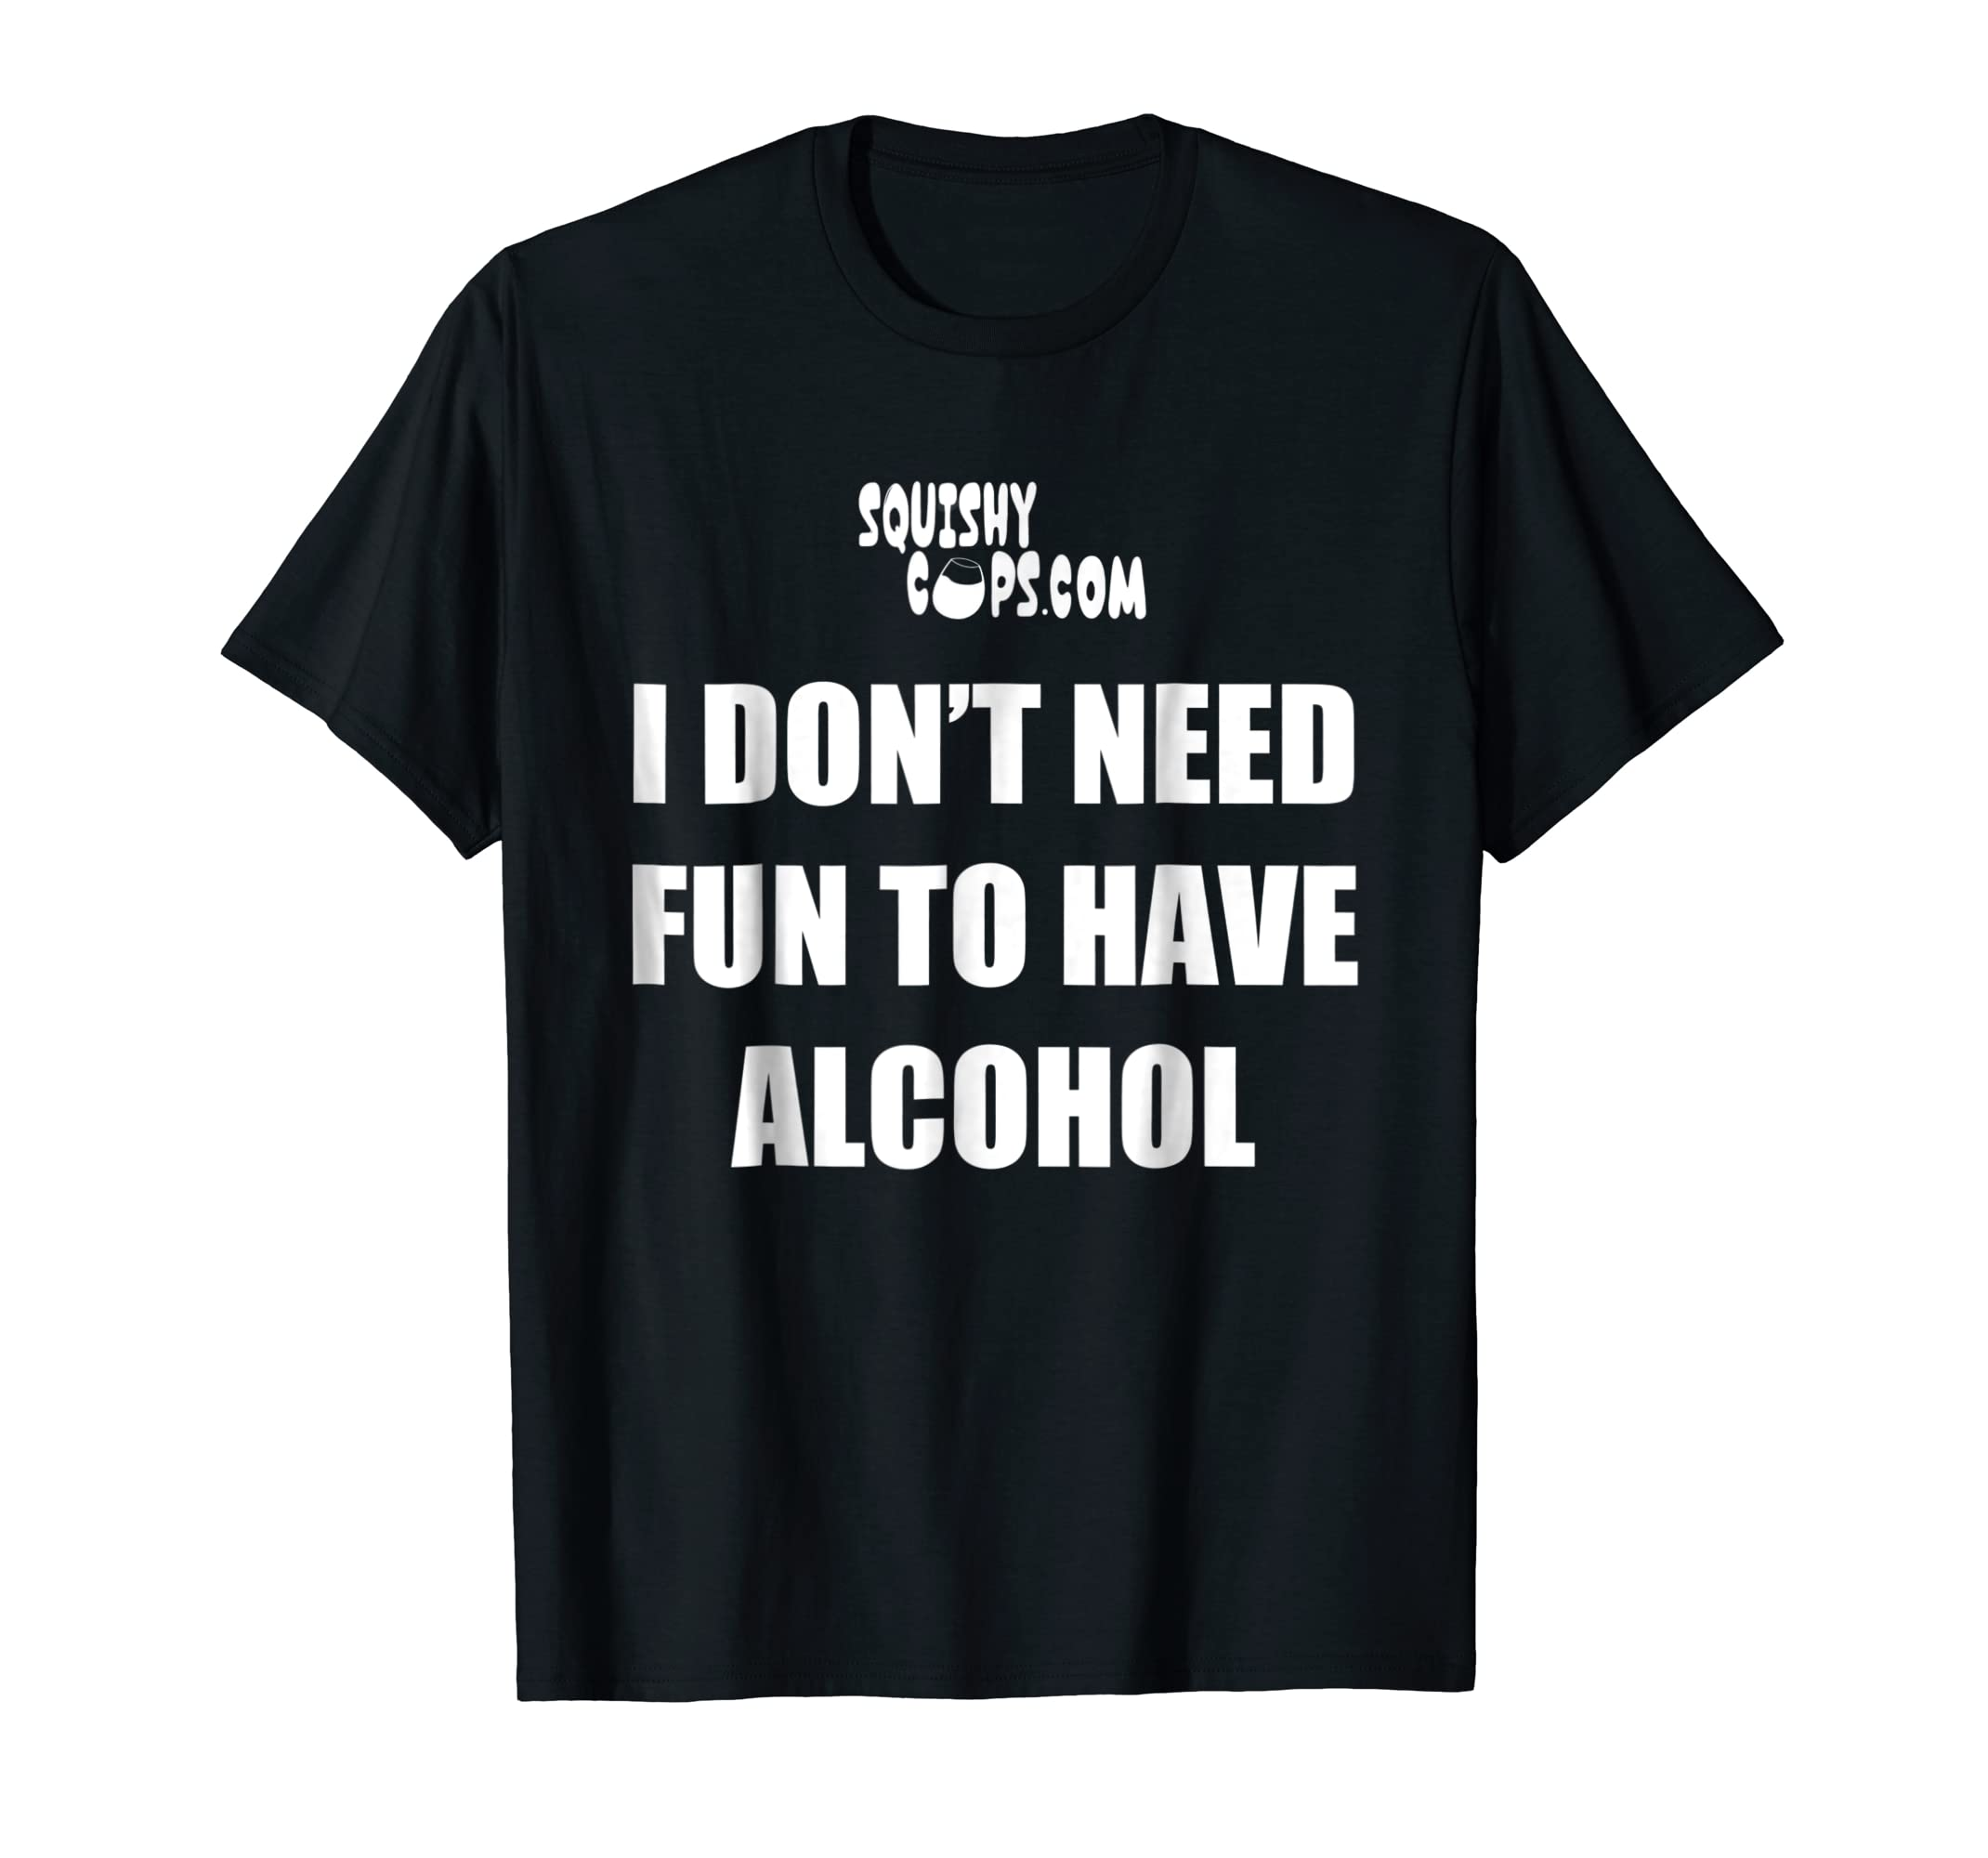 8bf3ccd2 Amazon.com: I Don't Need Fun to Have Alcohol - Funny T Shirt: Clothing